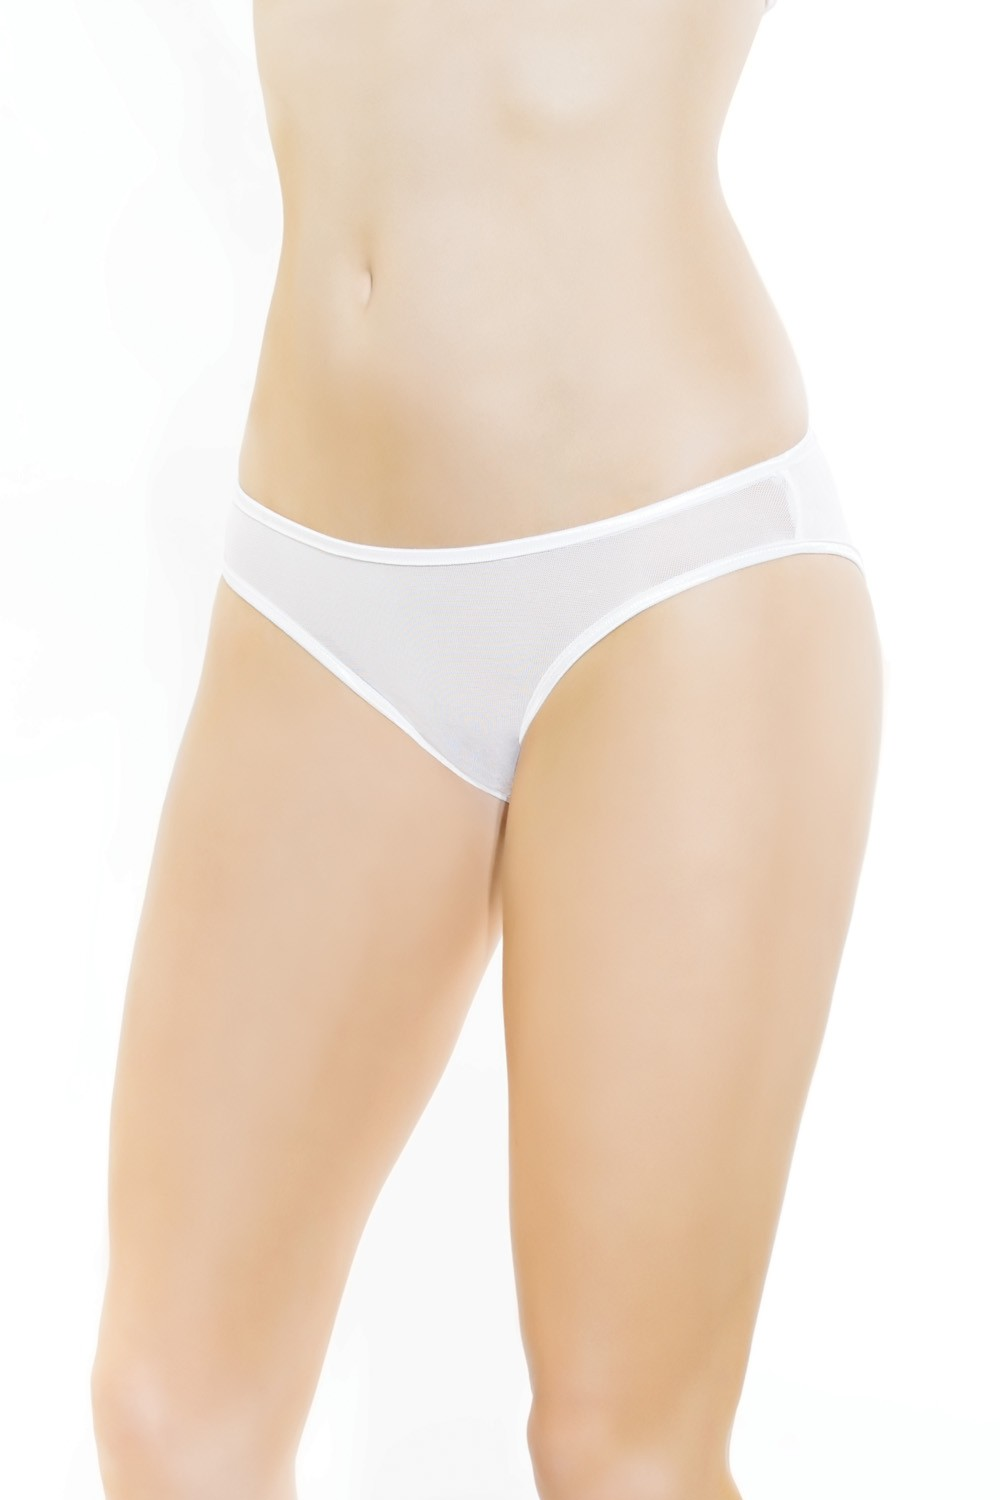 Pictures of crotchless panties